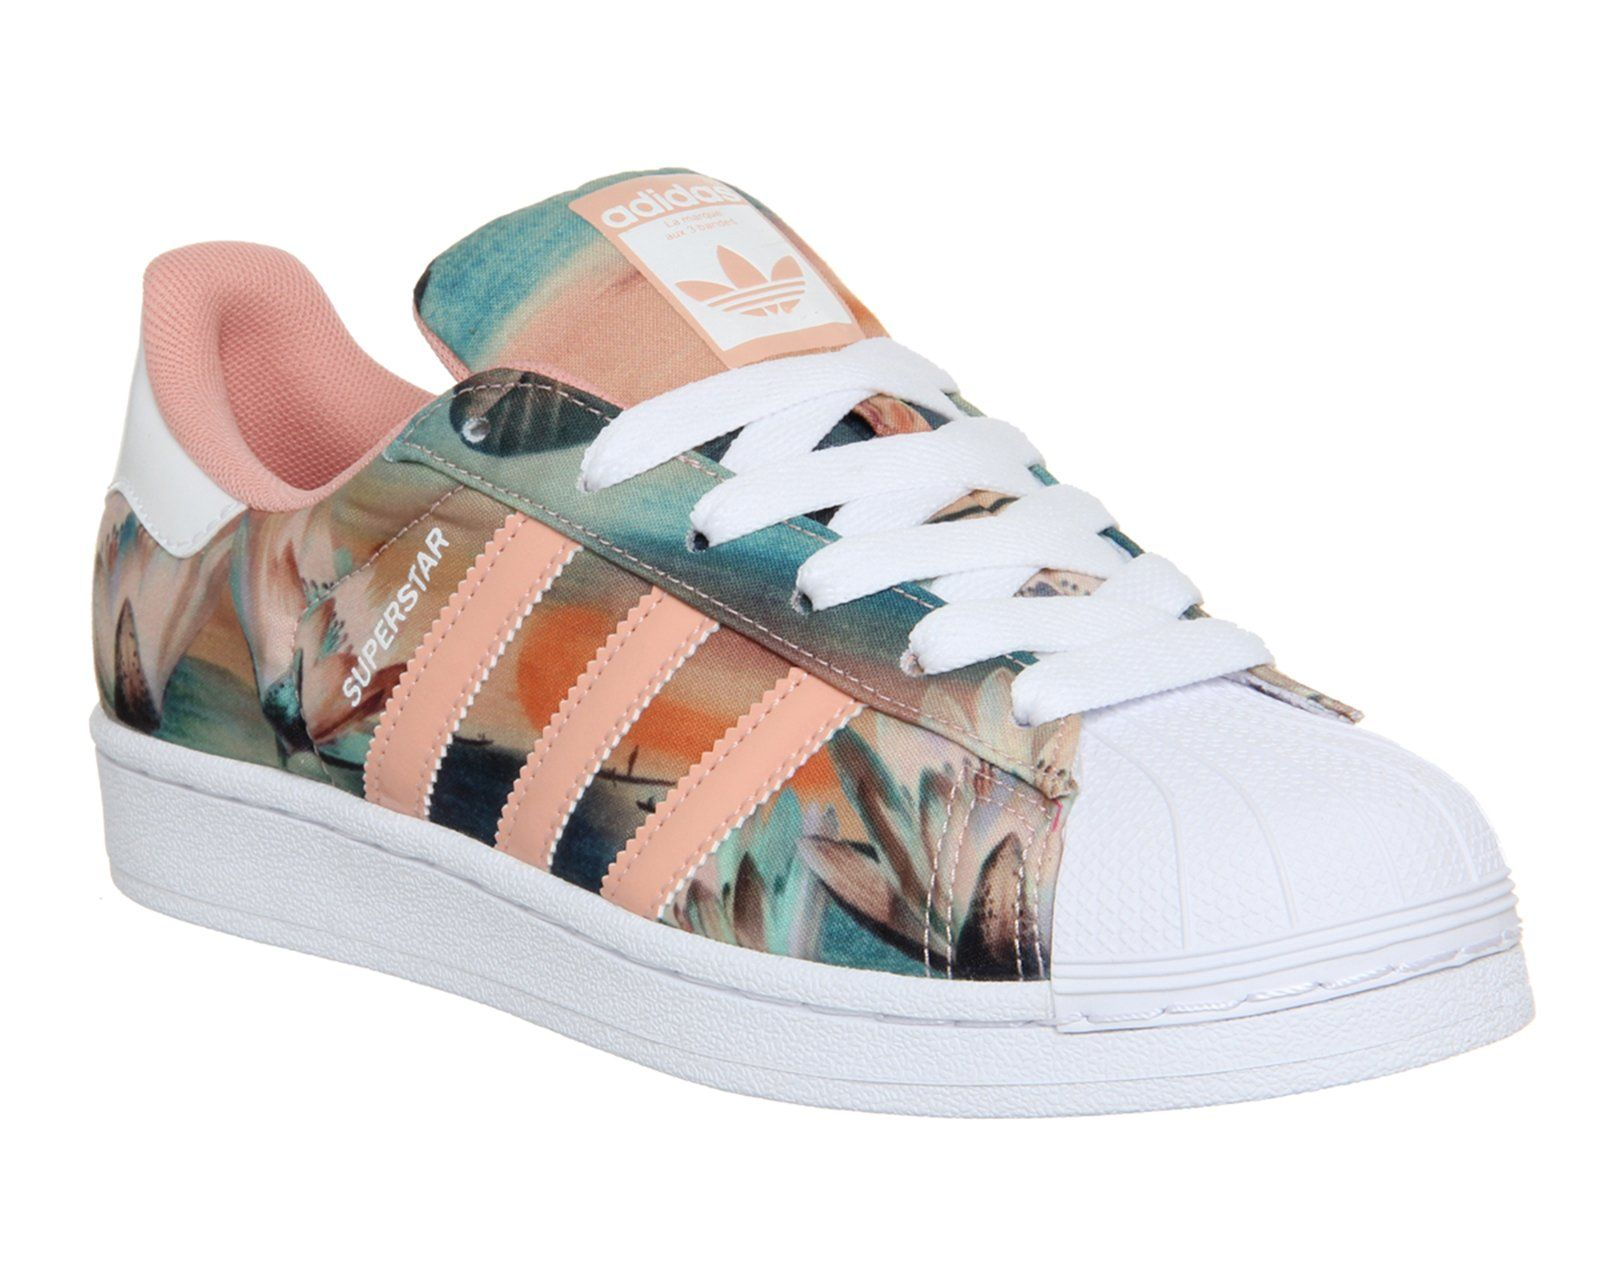 adidas superstar precio amazon